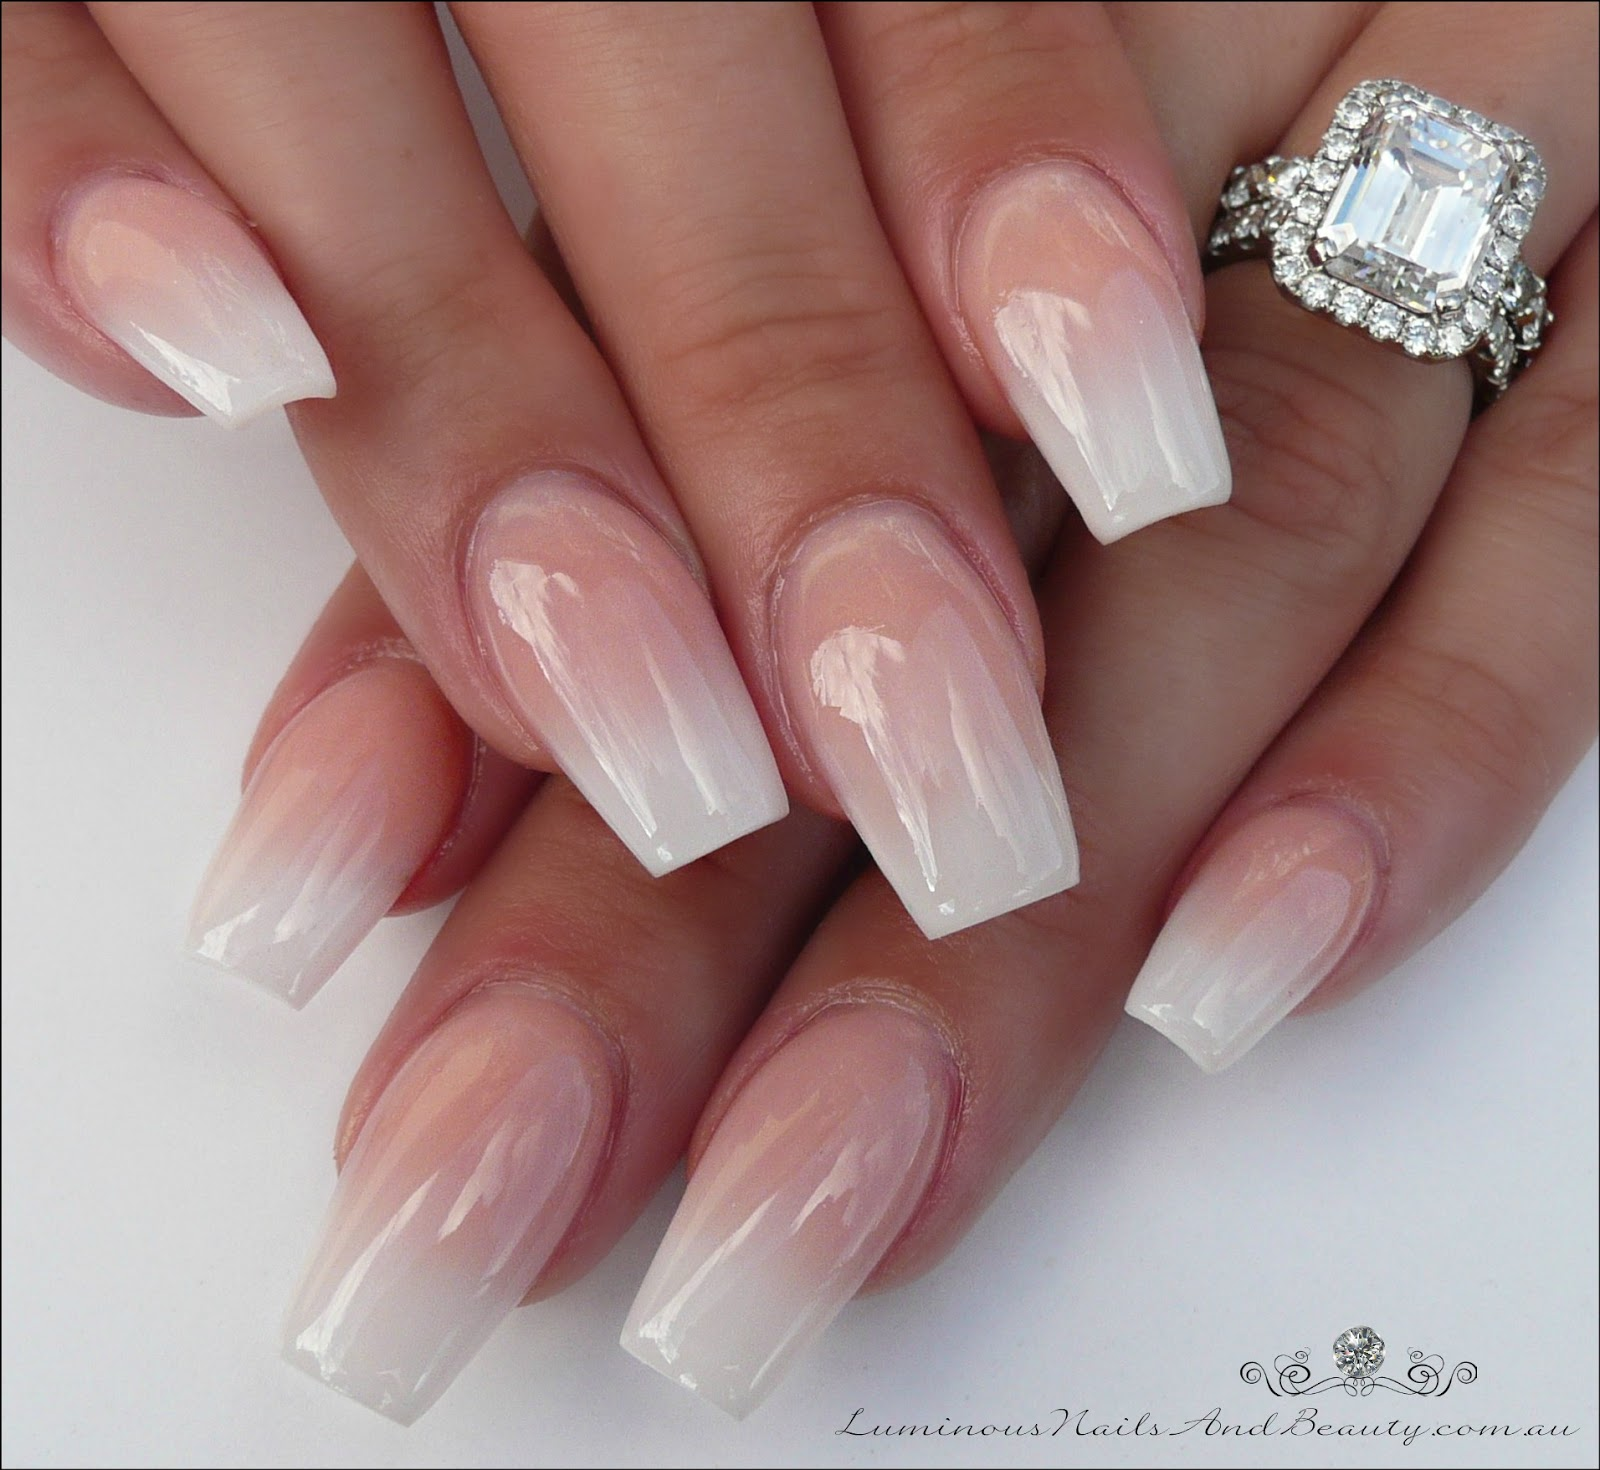 Luminous Nails Ombre Sculptured Acrylic